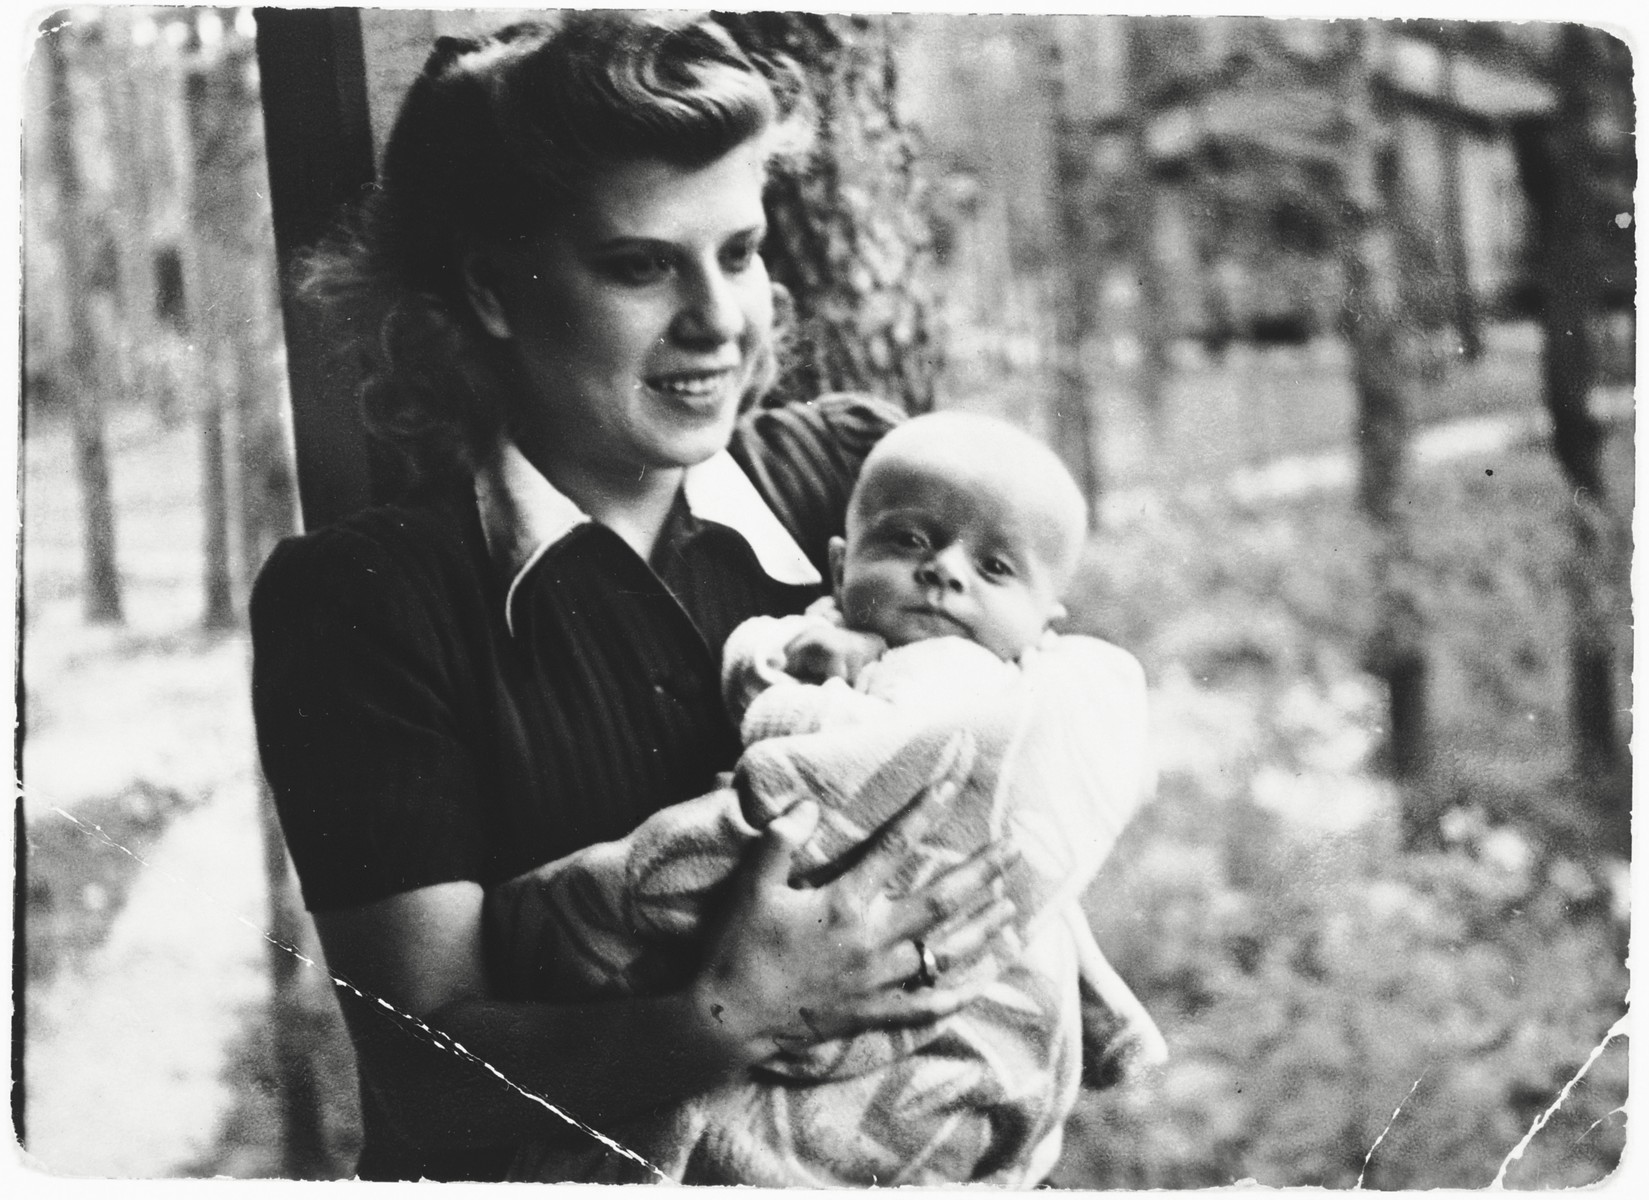 Nina Szapszewicz Ginter holds her infant son, Bogdan, while posing as a Polish woman in Warsaw.